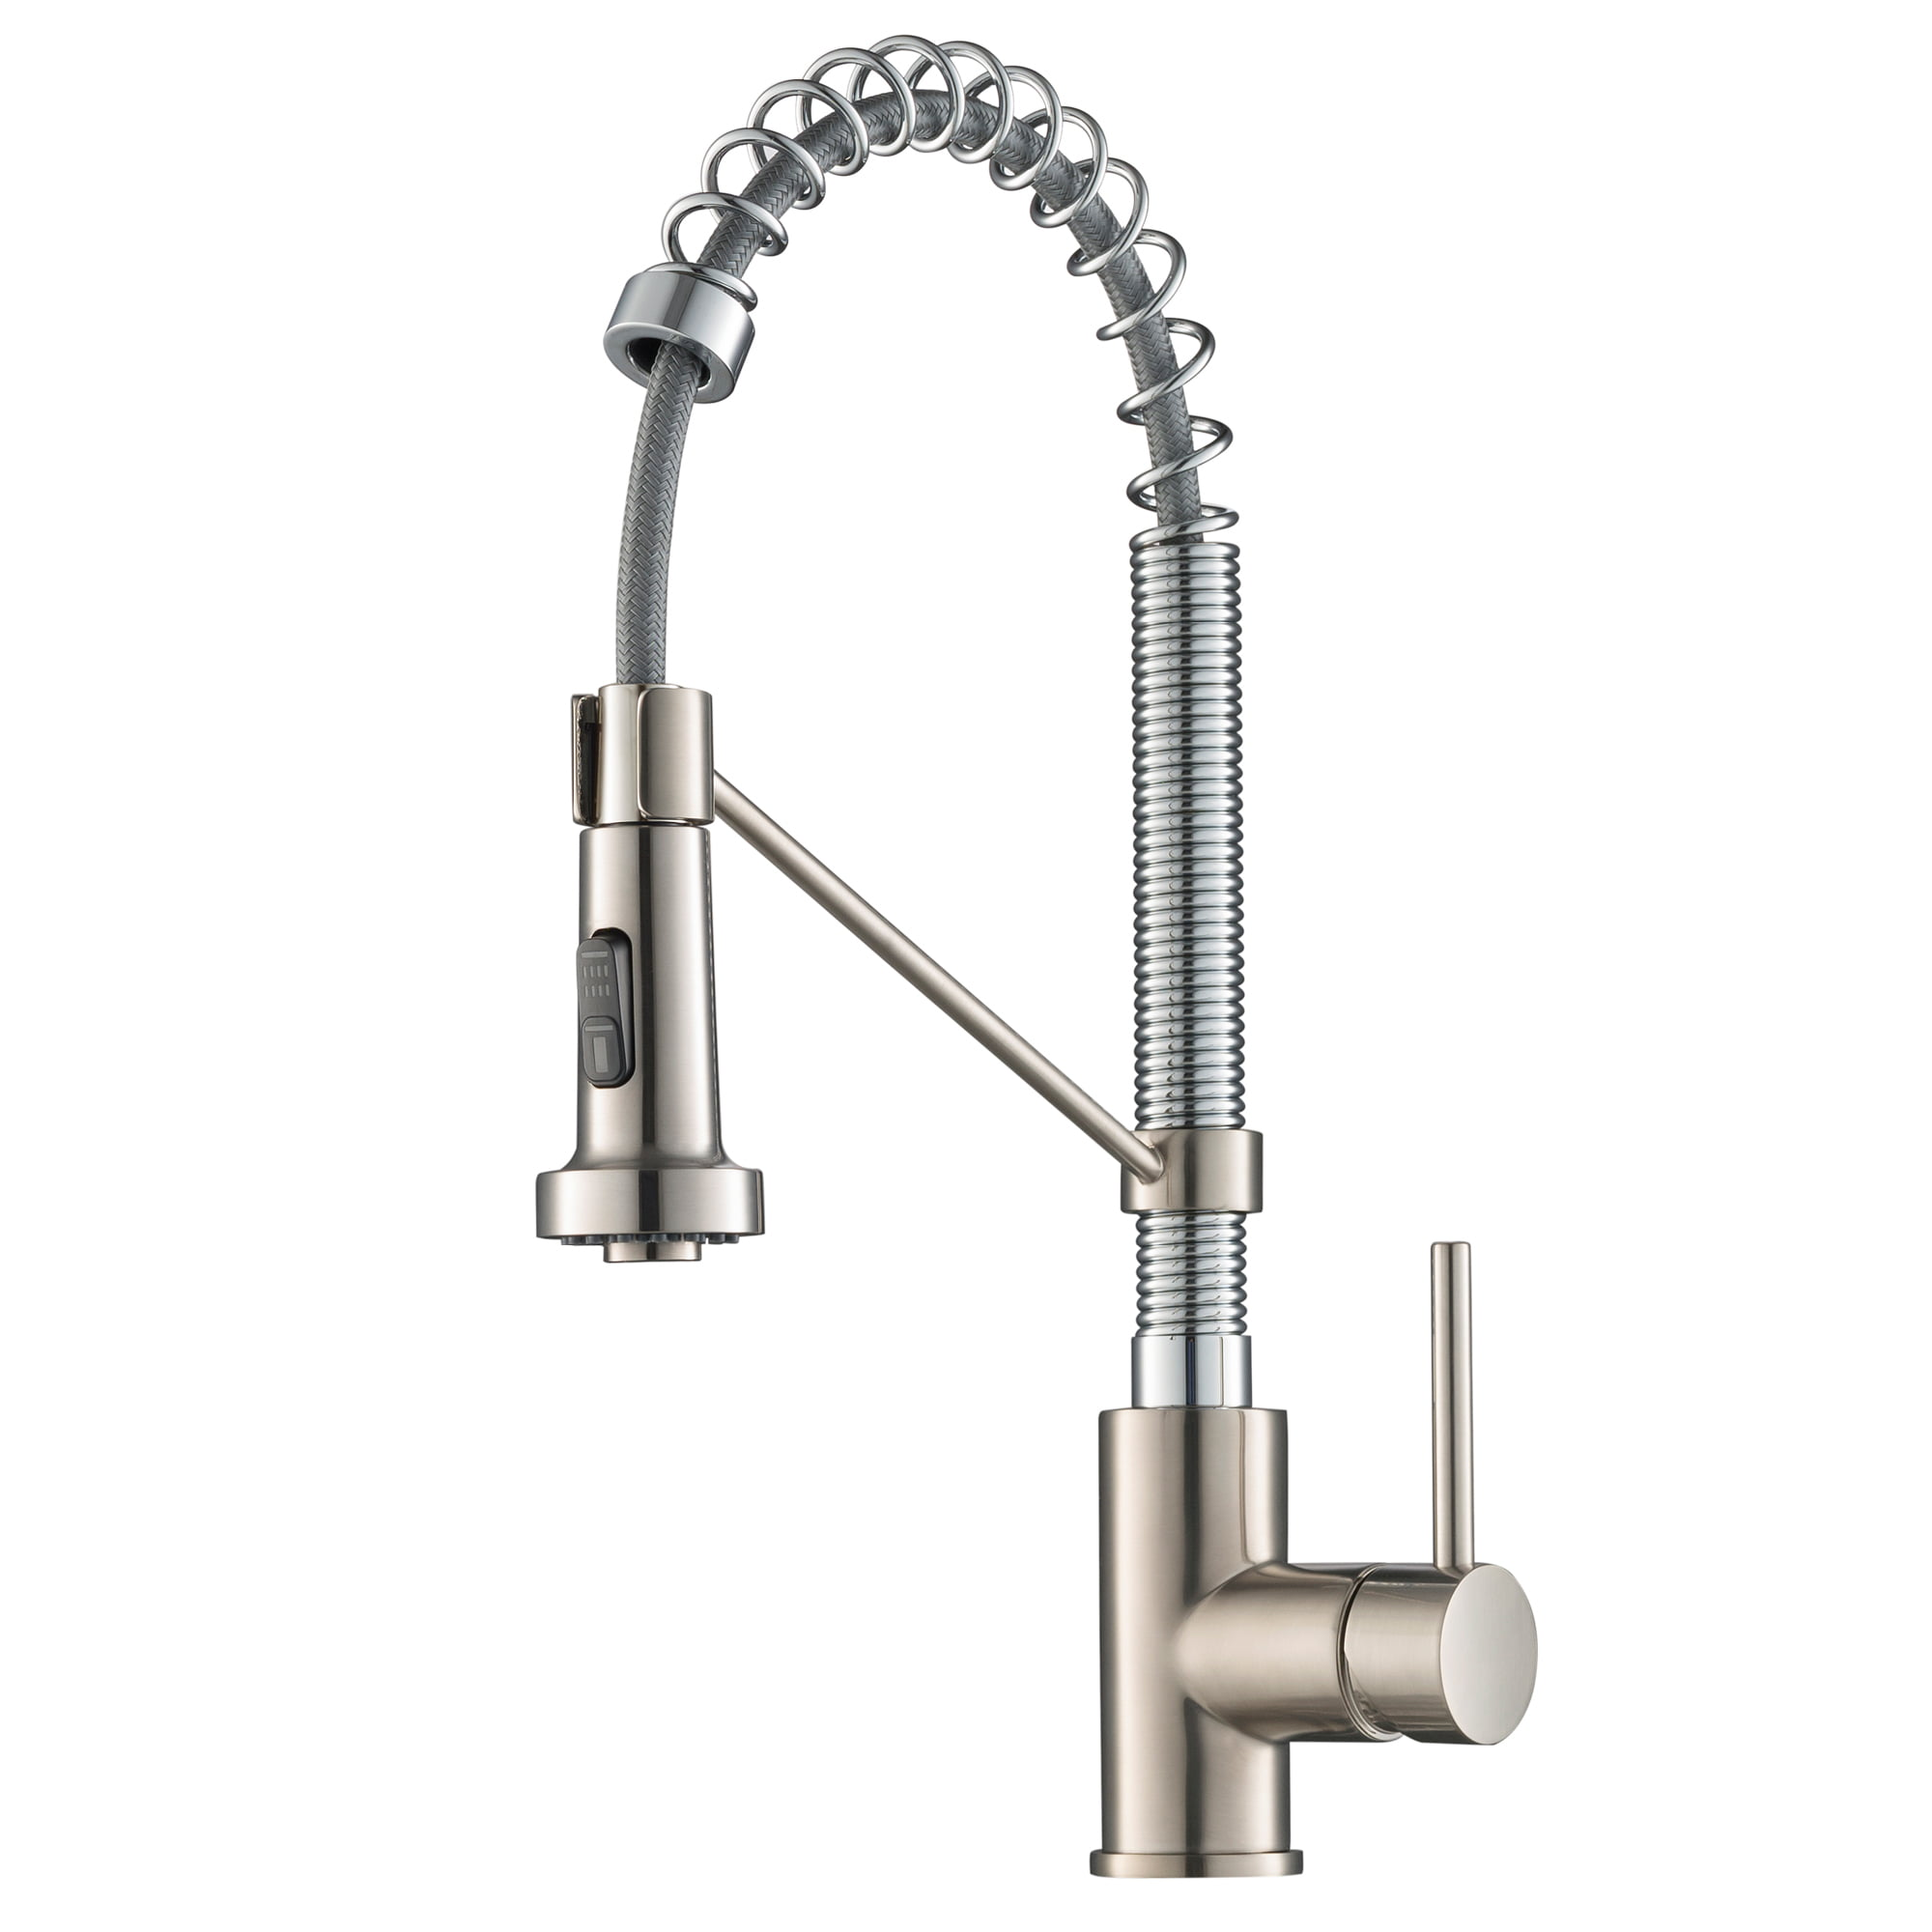 KRAUS Spot Free Bolden™ 18-Inch Commercial Kitchen Faucet with Dual Function Pull-Down Sprayhead in all-Brite™ Stainless Steel/Chrome Finish